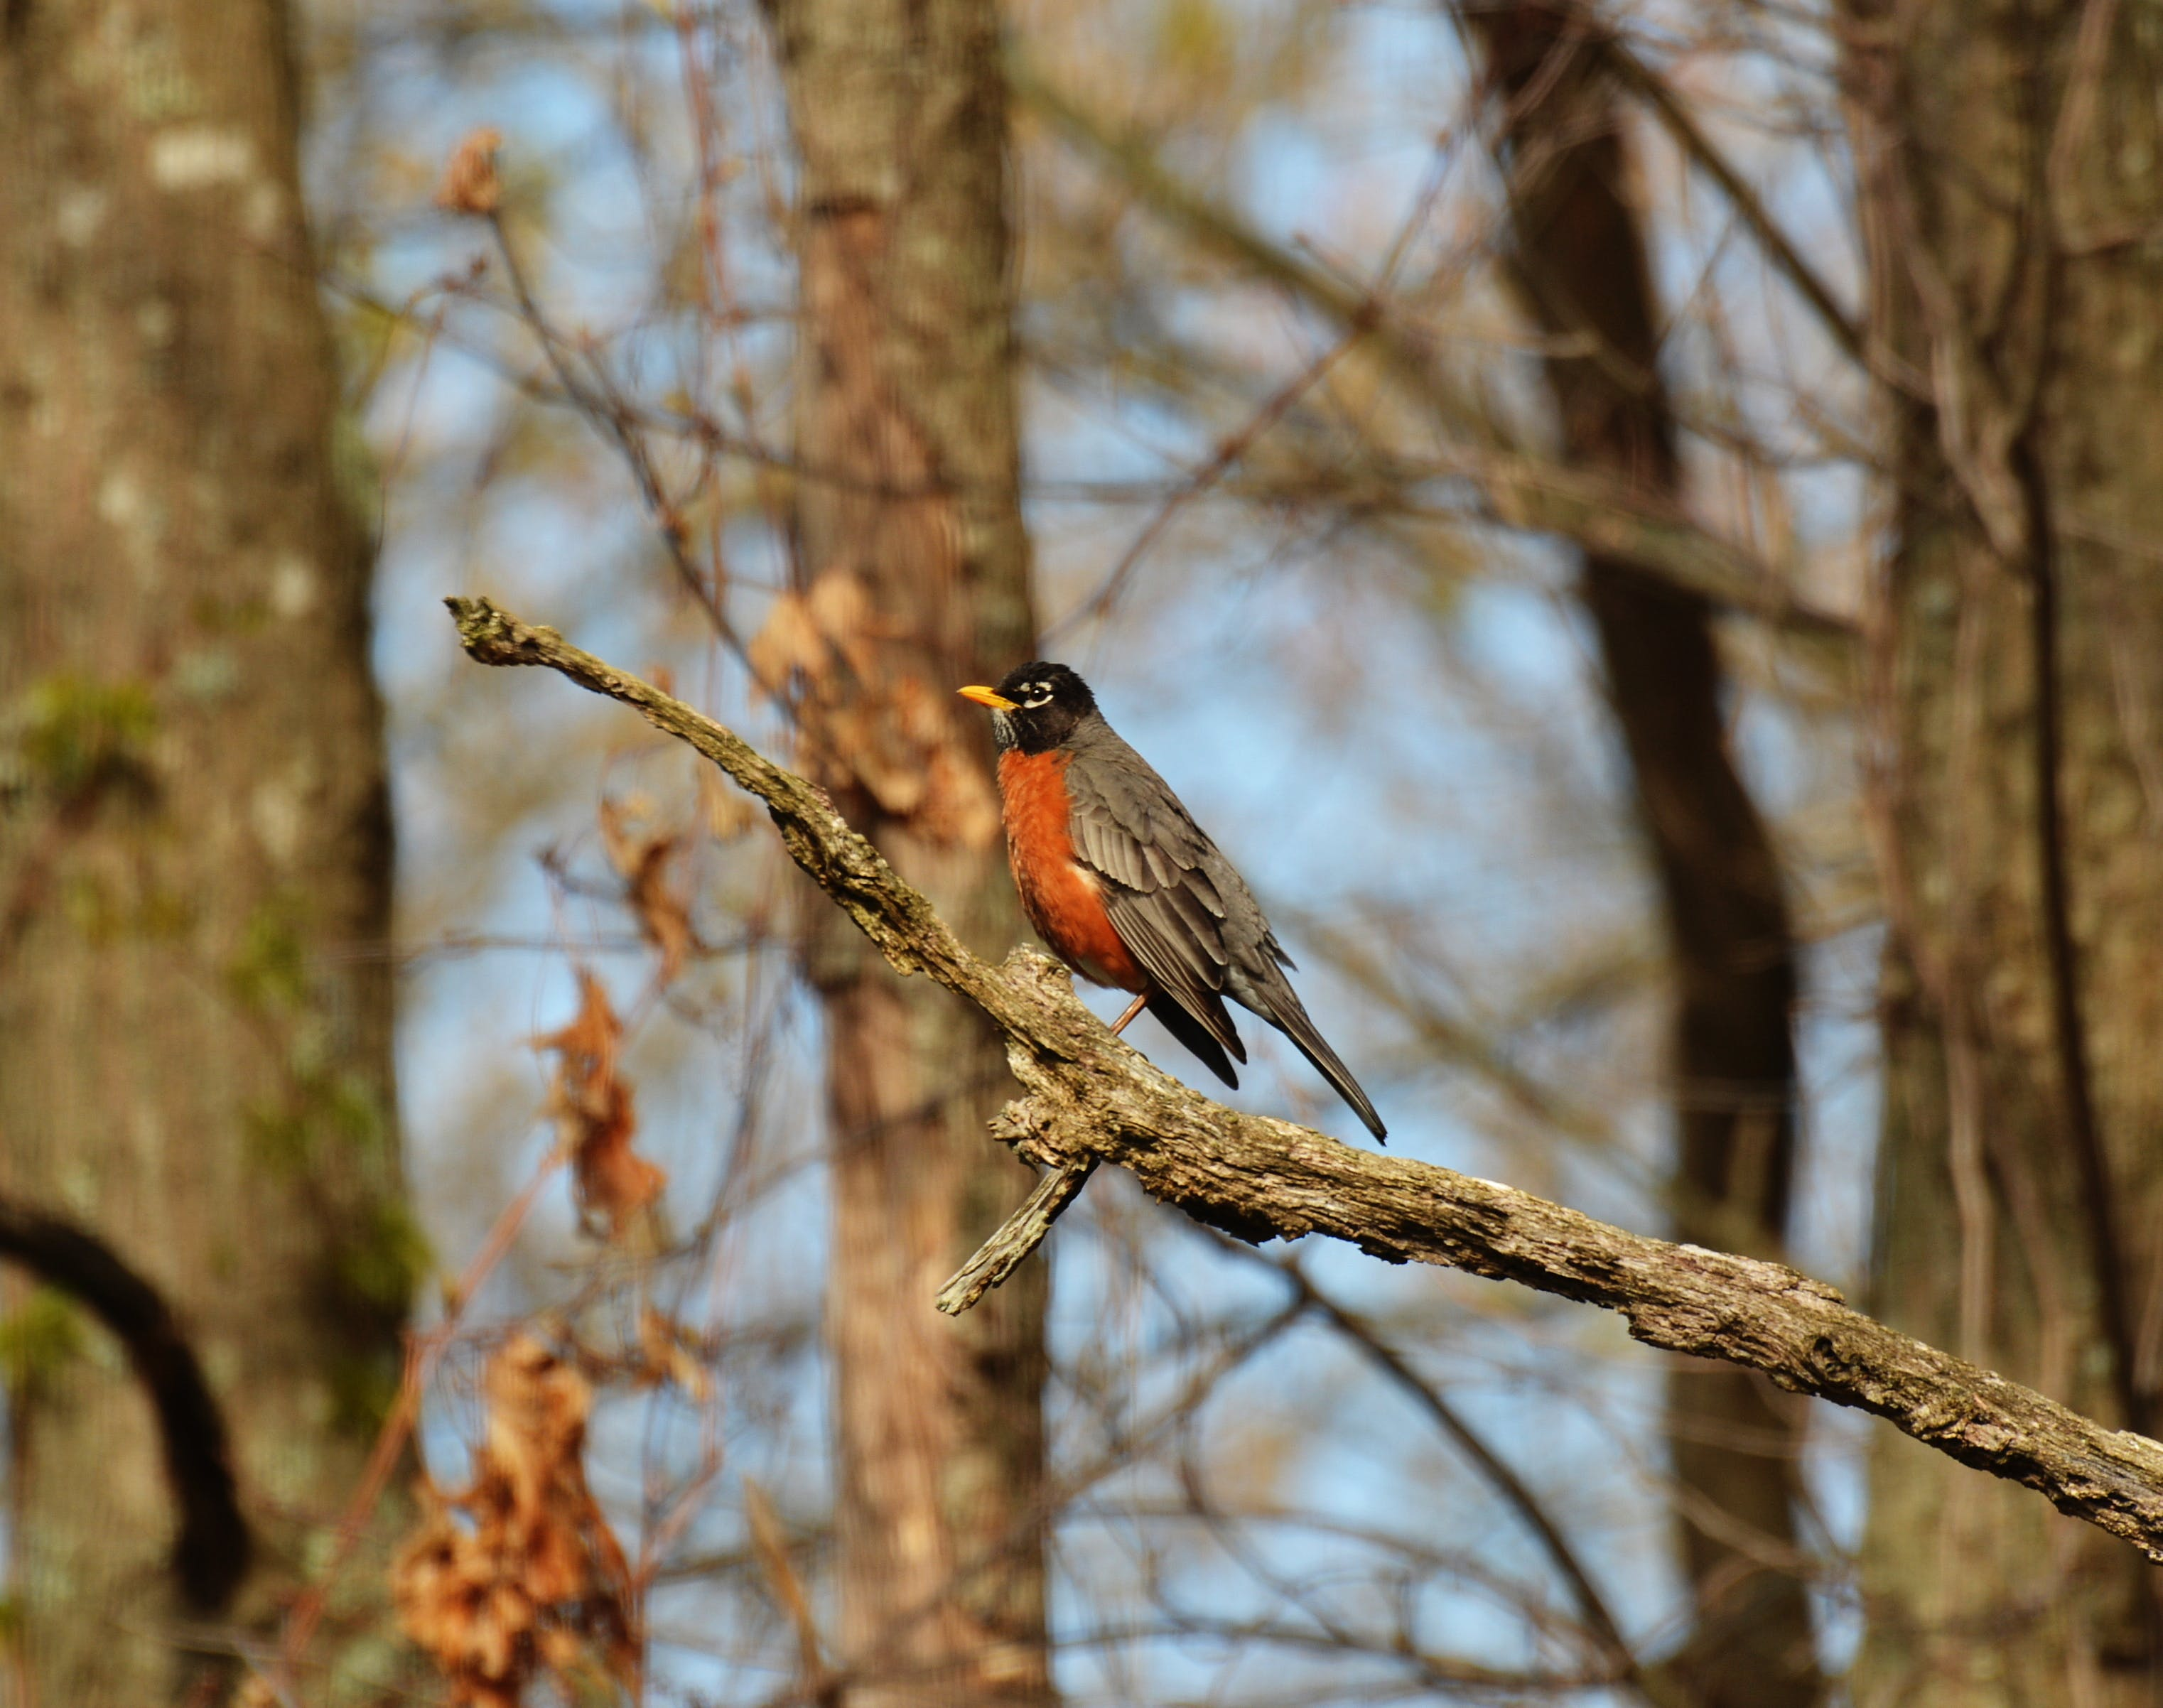 Gray Orange and Black Bird on Brown Tree Branch